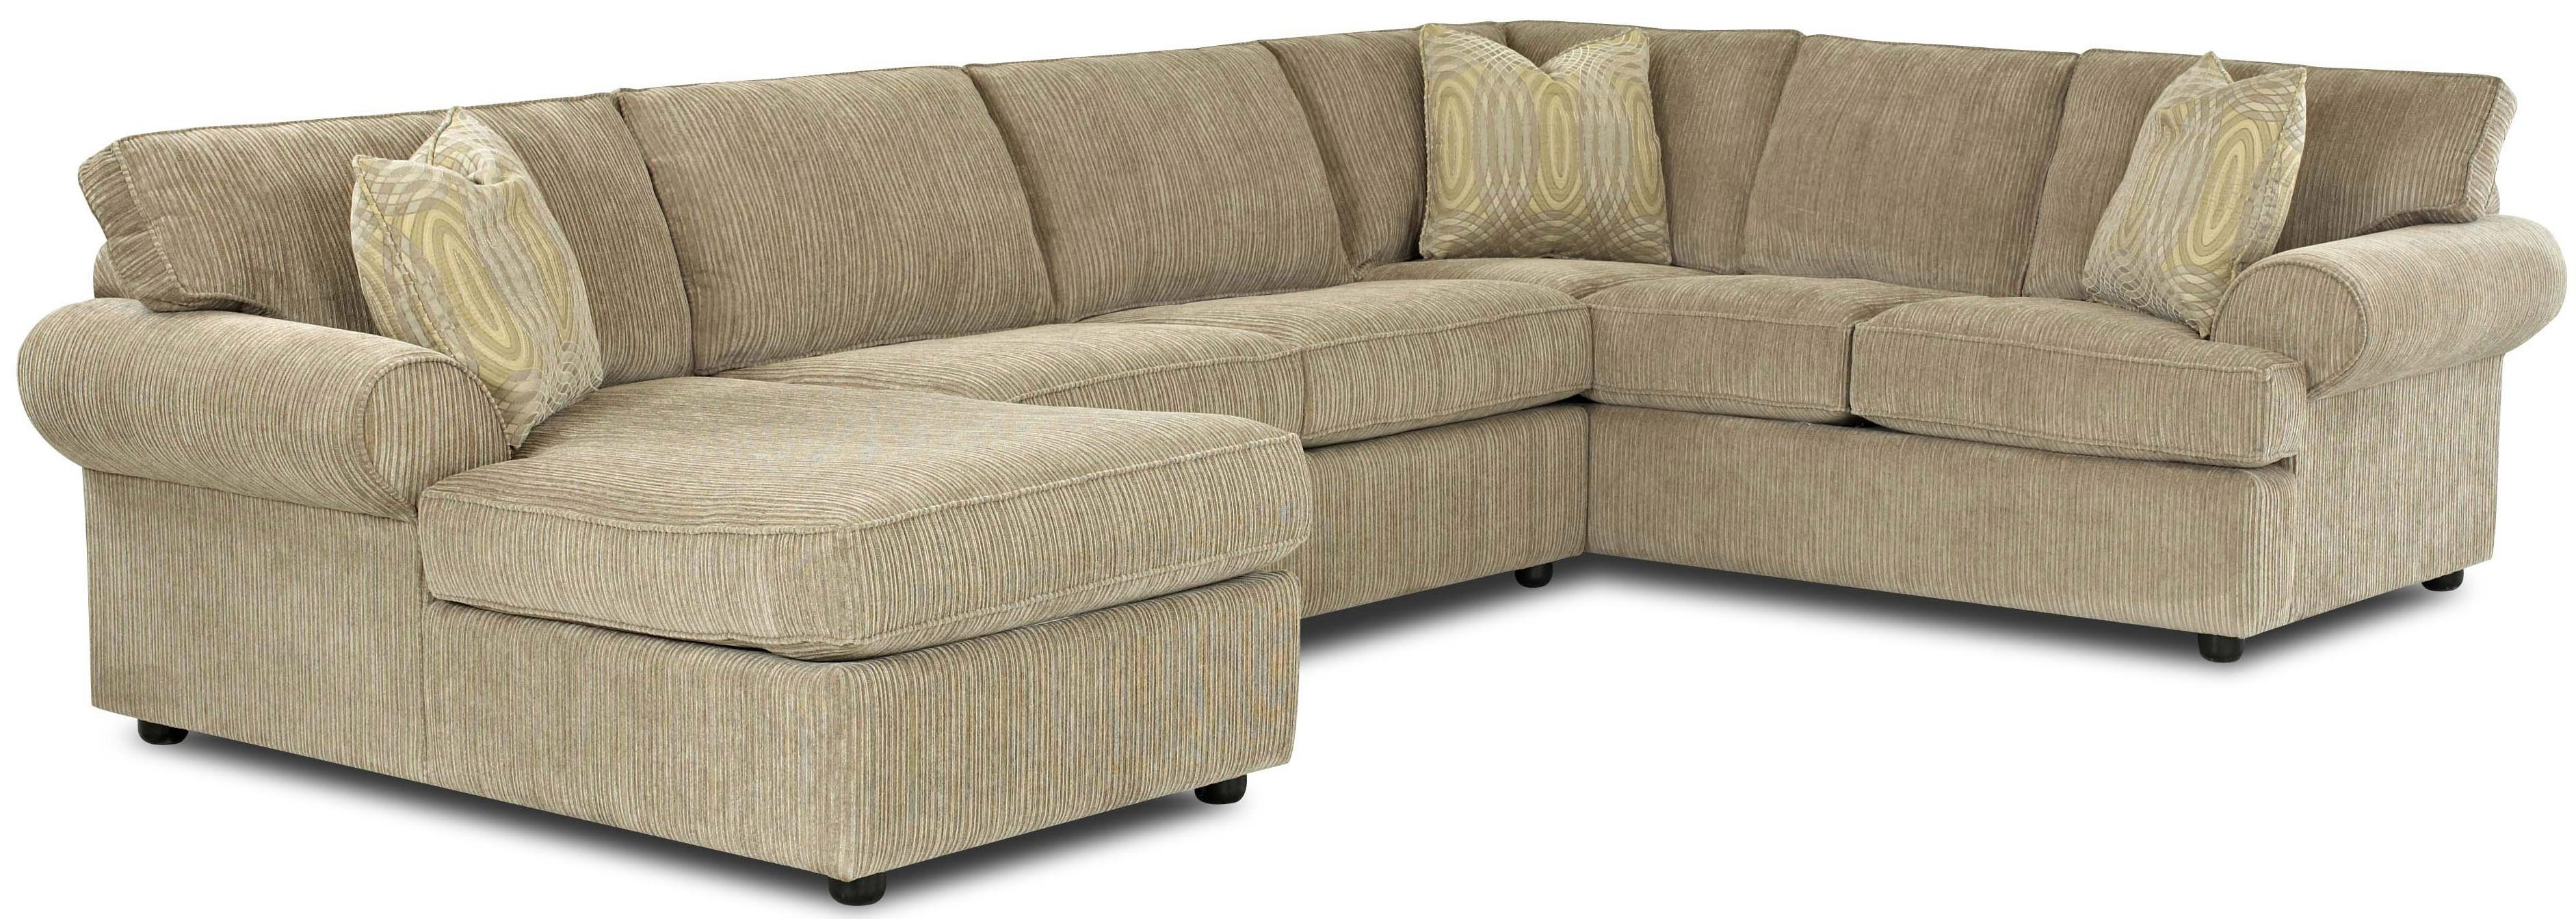 Chaises With Arms For Famous Sectional Sofa Design: Amazing Chaise Sofa Sectional Sectional (View 3 of 15)